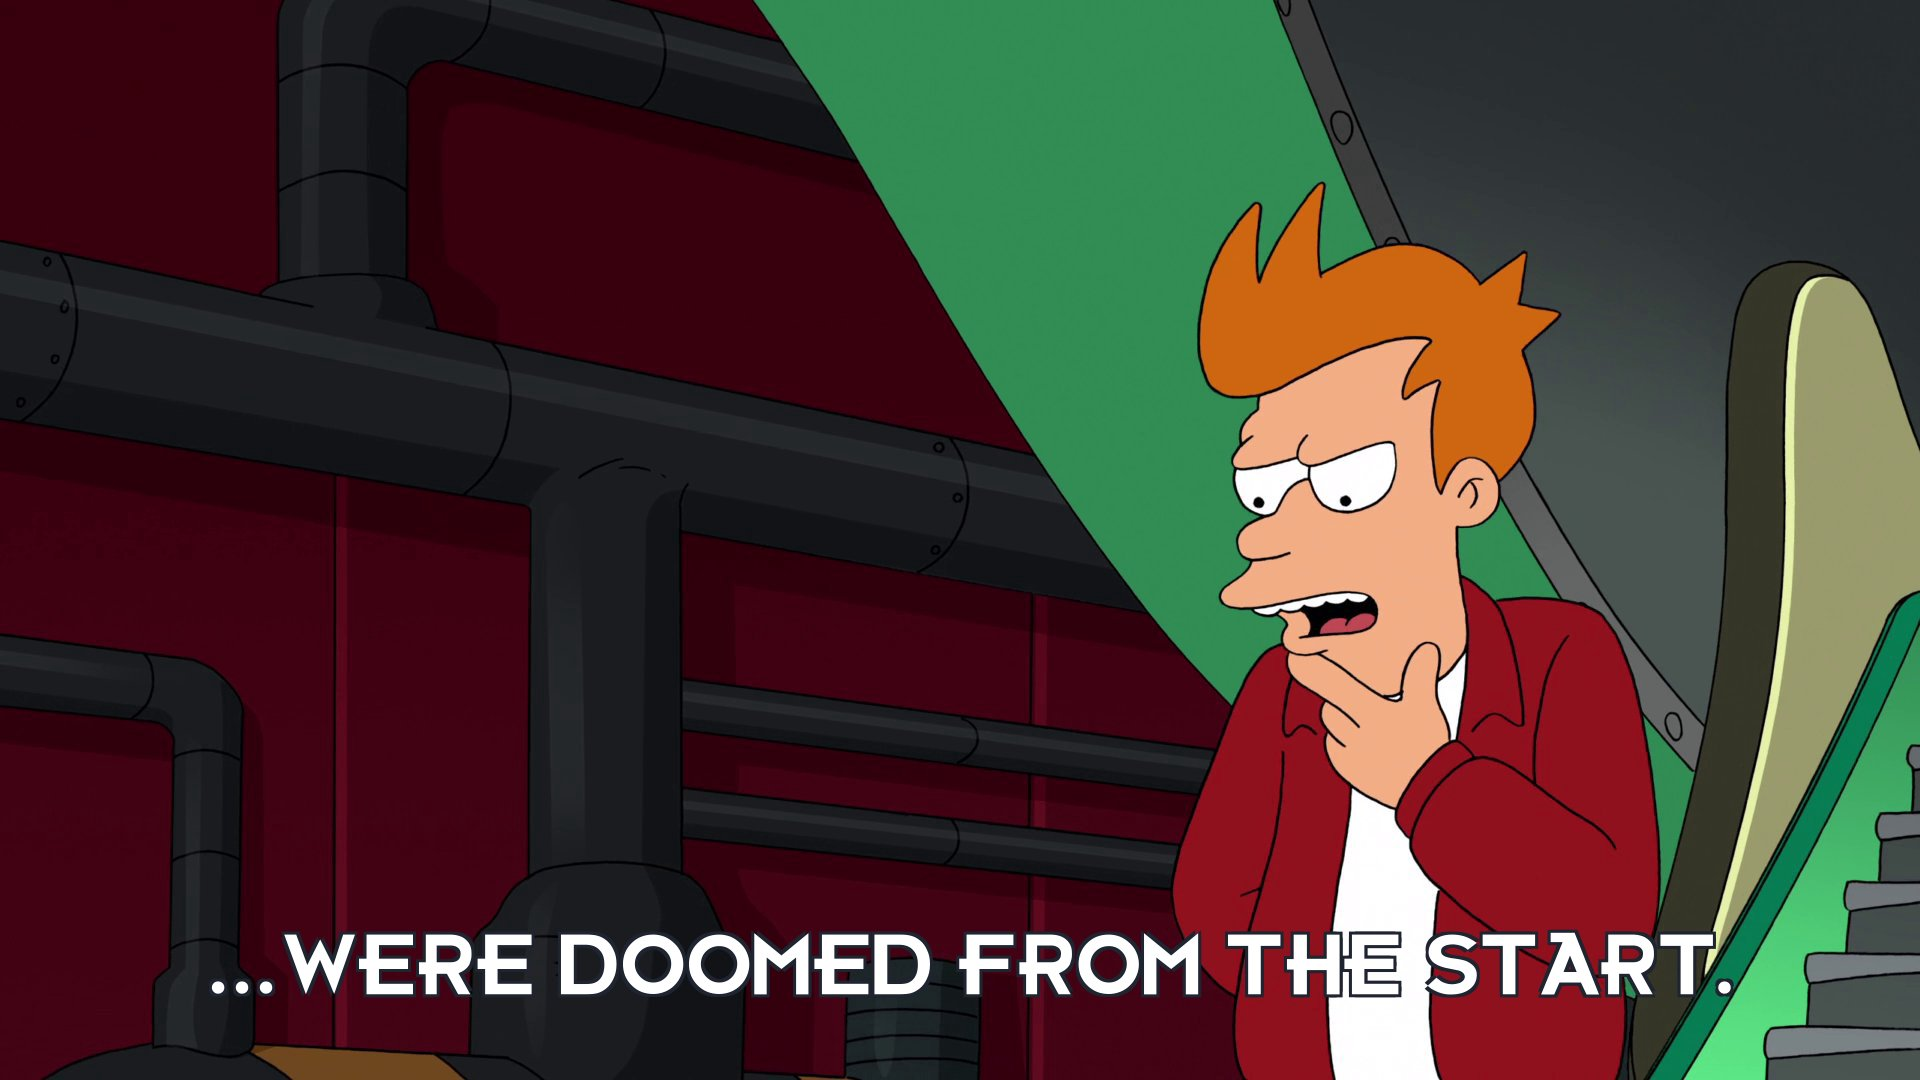 Philip J Fry: ...were doomed from the start.